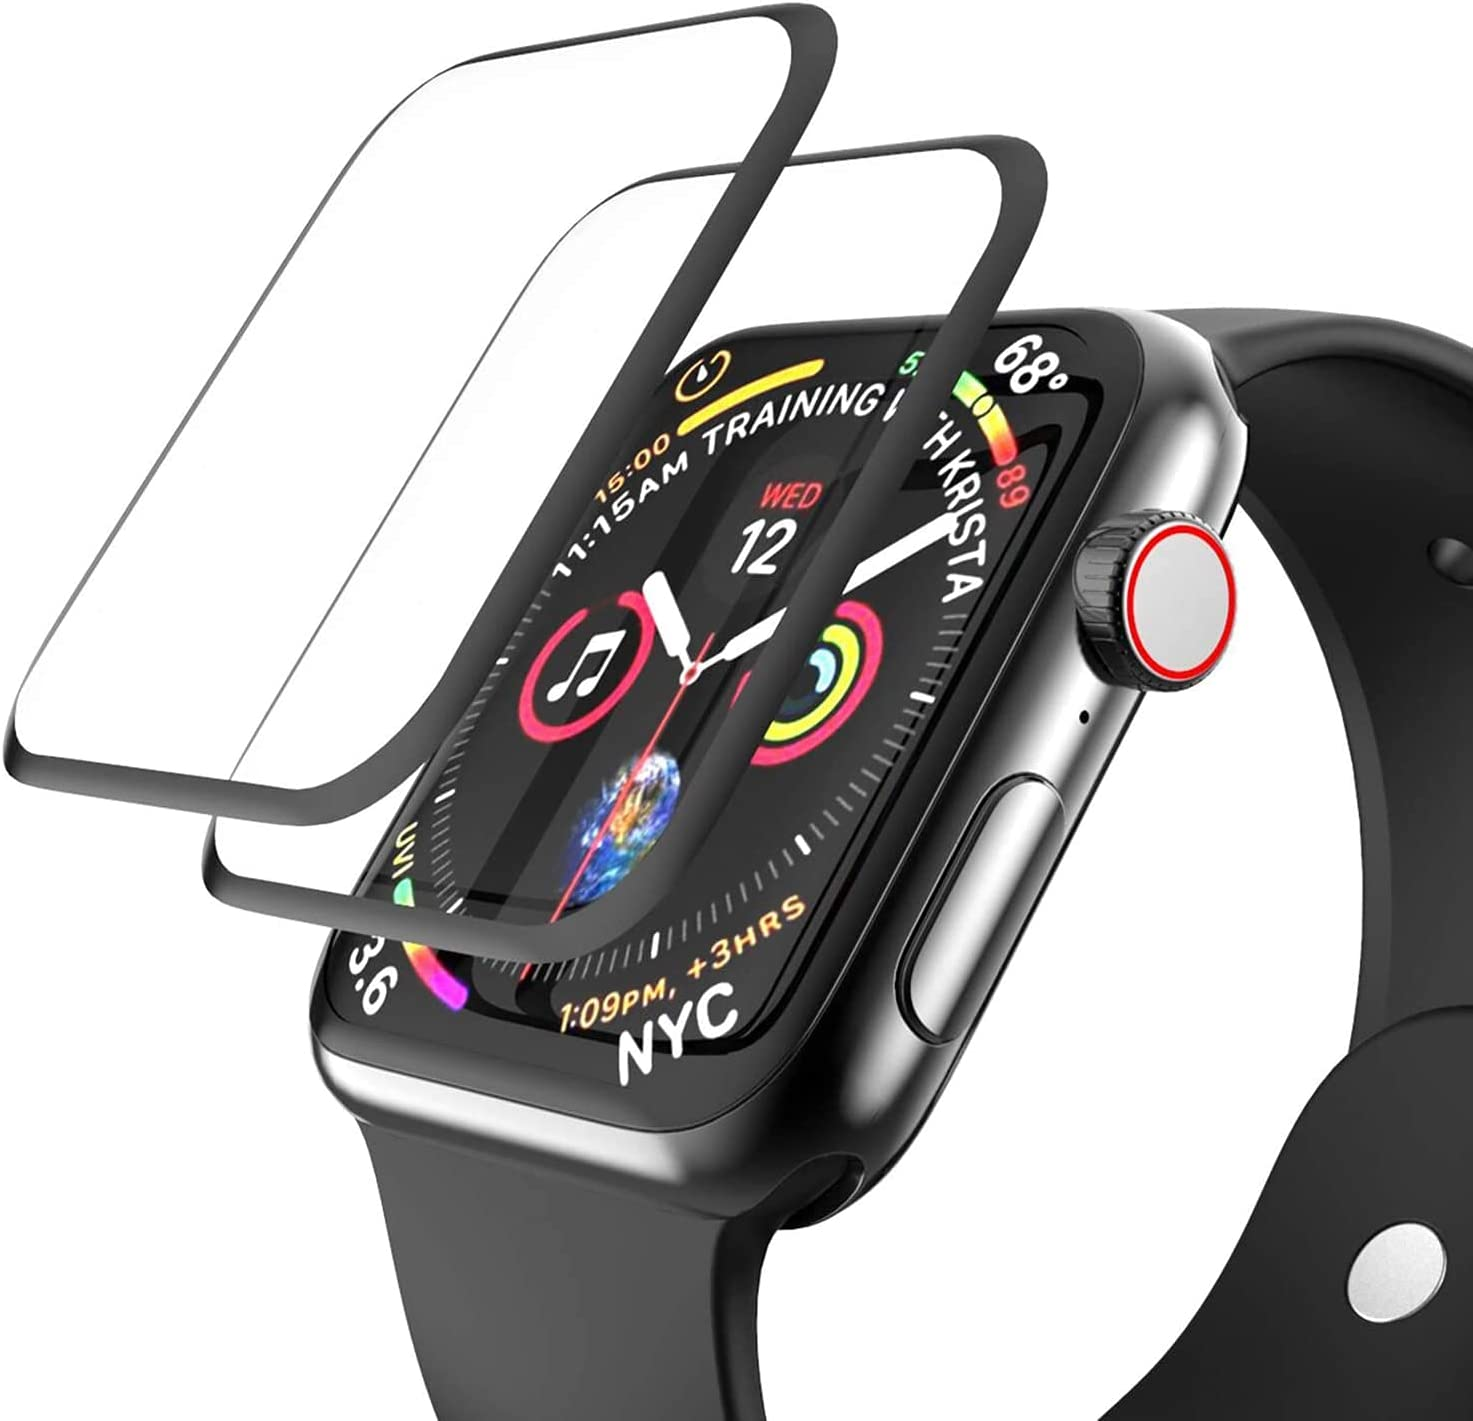 [2 Pack] Tempered Glass Screen Protector Compatible for Apple Watch Series 3/2/1 42mm, EWUONU 3D Full Coverage [Easy Installation Frame] Waterproof Bubble-Free HD Clear Film for iWatch 42mm(42mm)